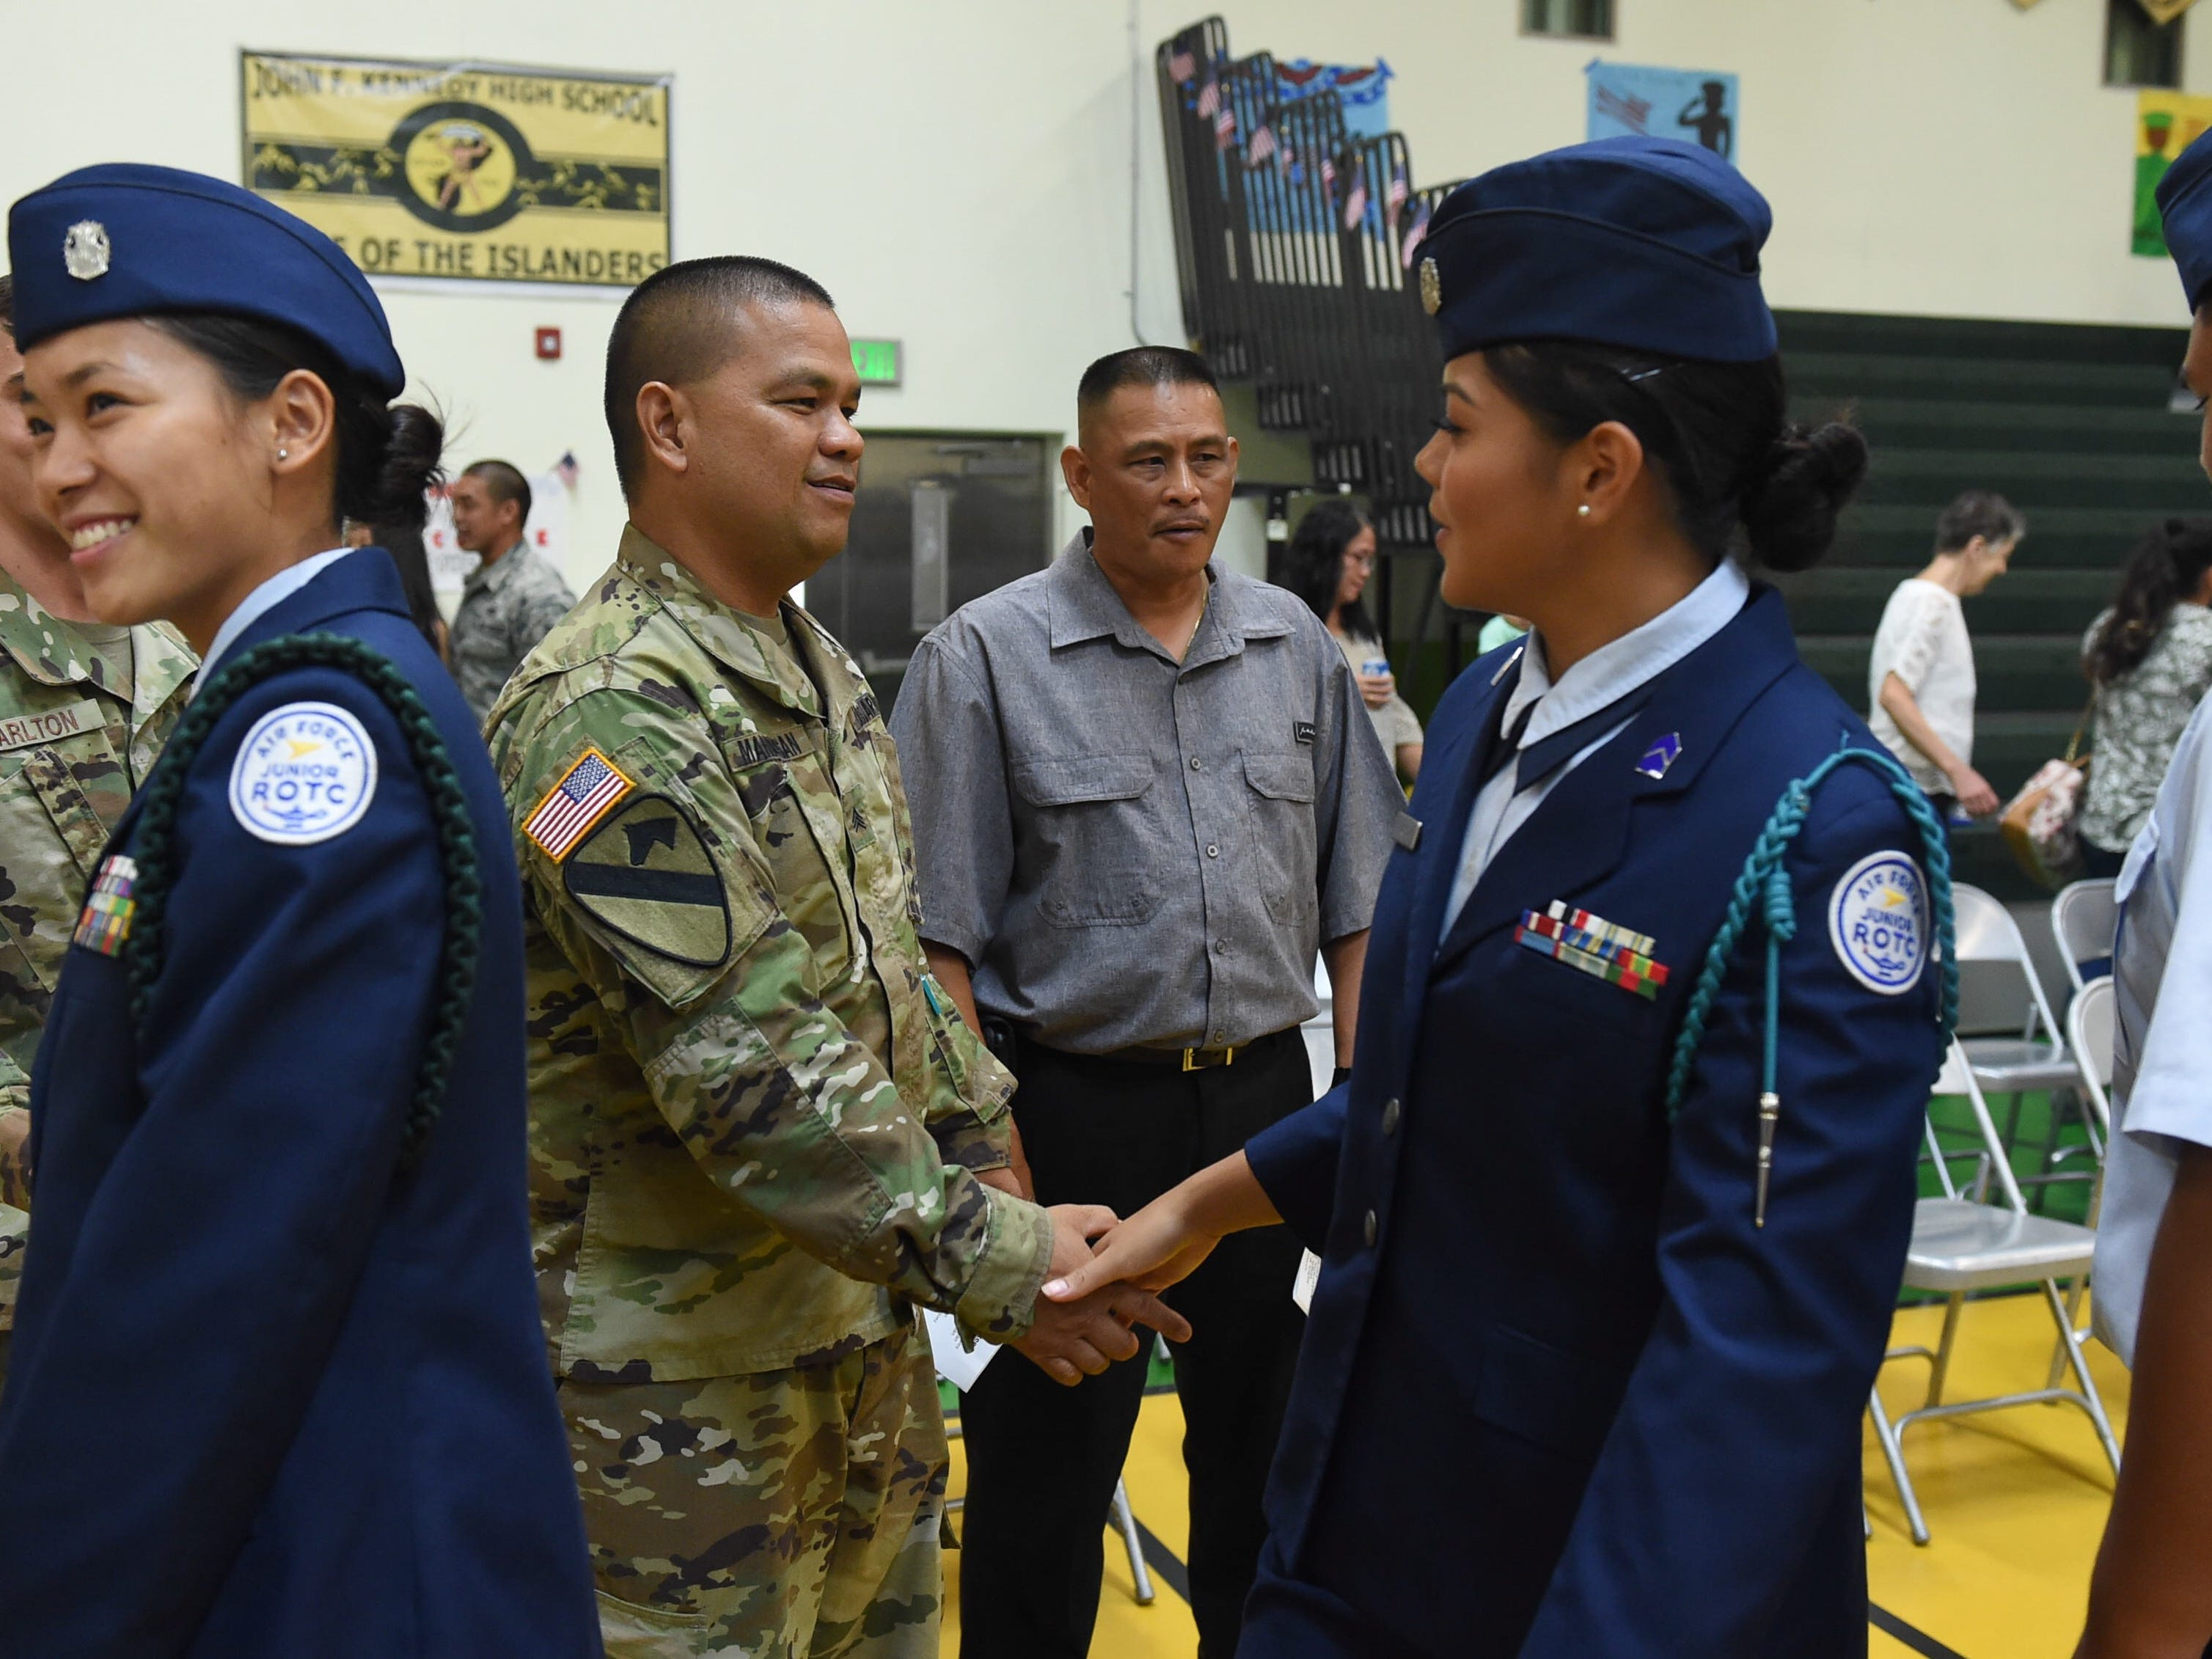 School Air Force ROTC students greet veterans after the JFK High School Veterans Recognition Ceremony, Nov. 9, 2018.